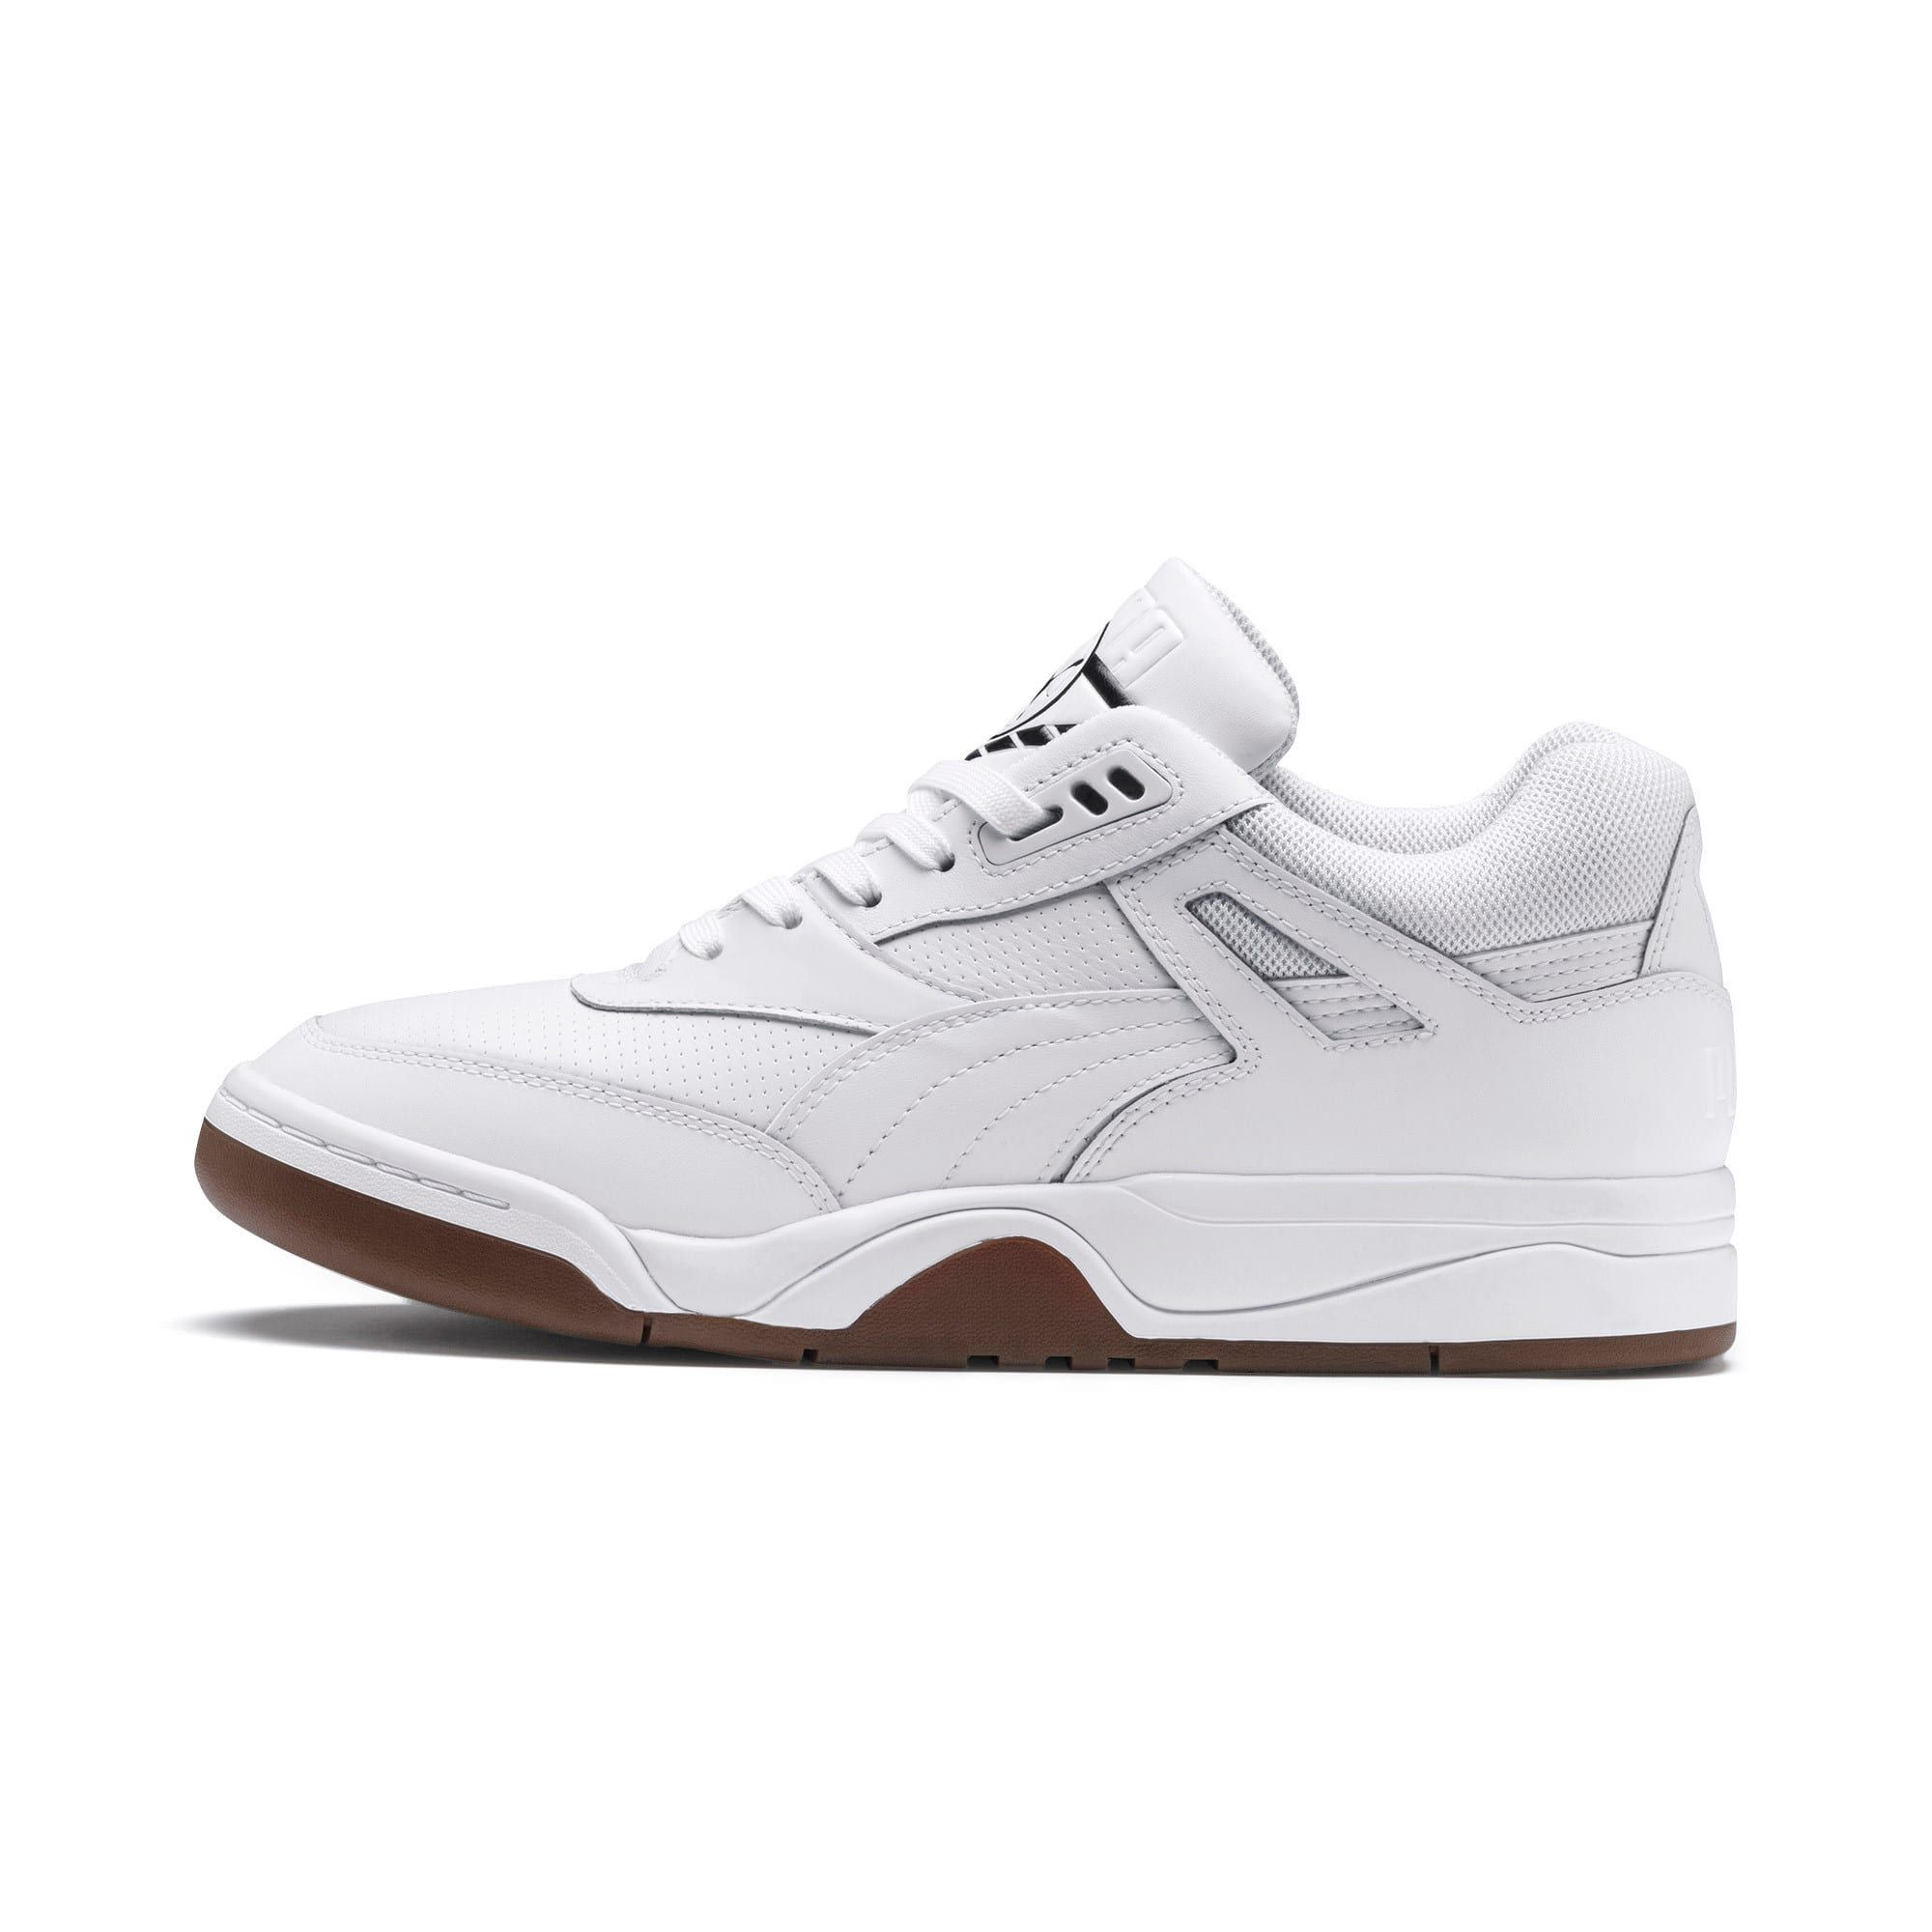 PUMA Palace Guard Men's Basketball Trainers in White/Gum size 10.5